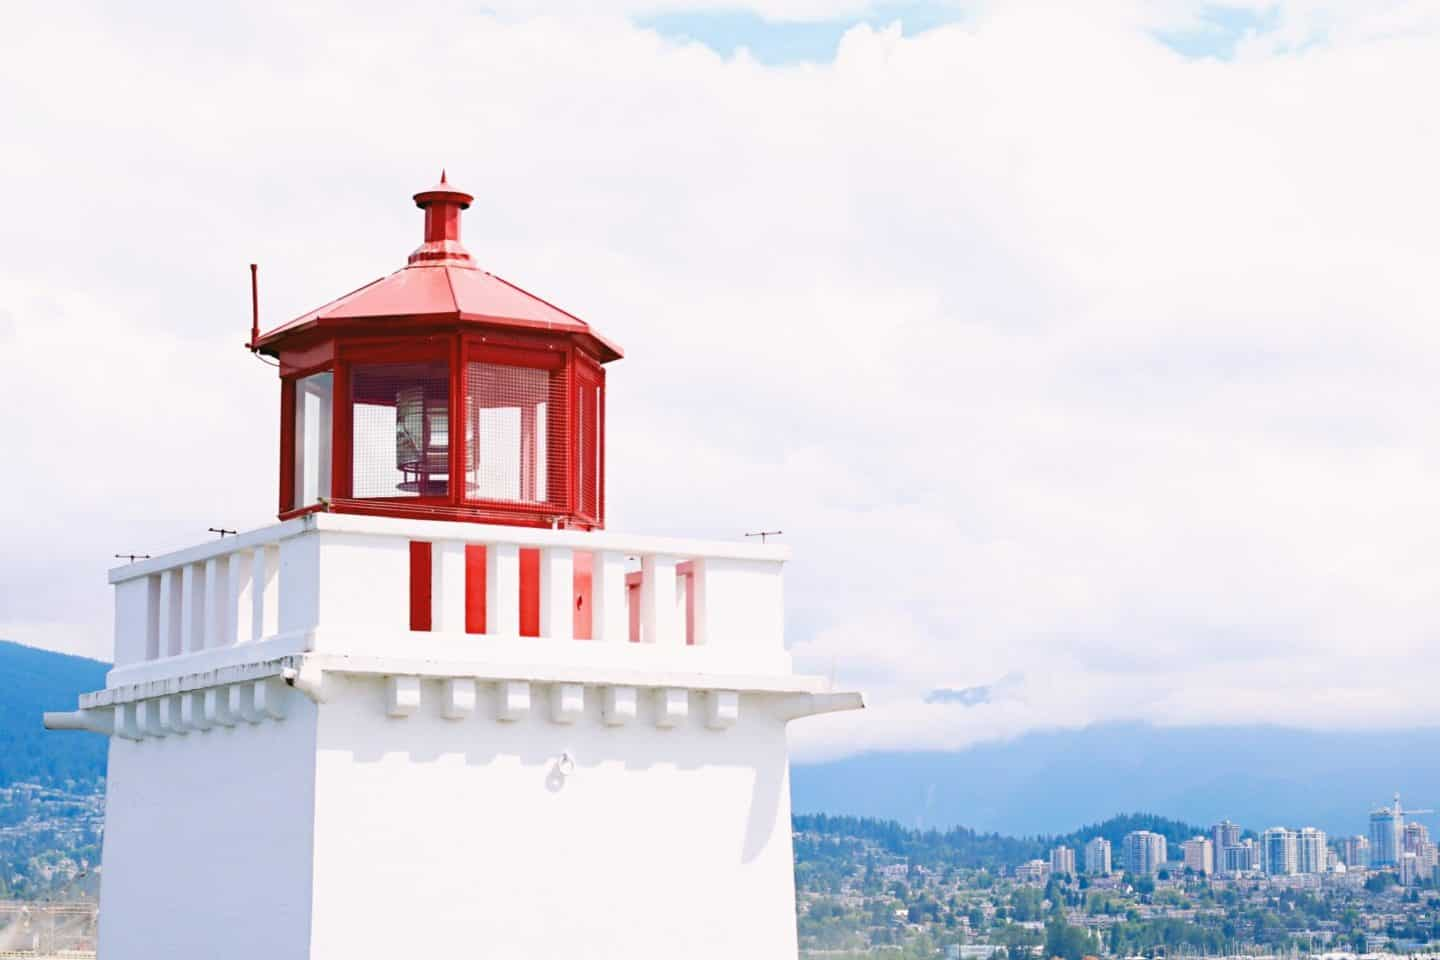 Lighthouse at Stanley Park Seawall, Vancouver, British Columbia